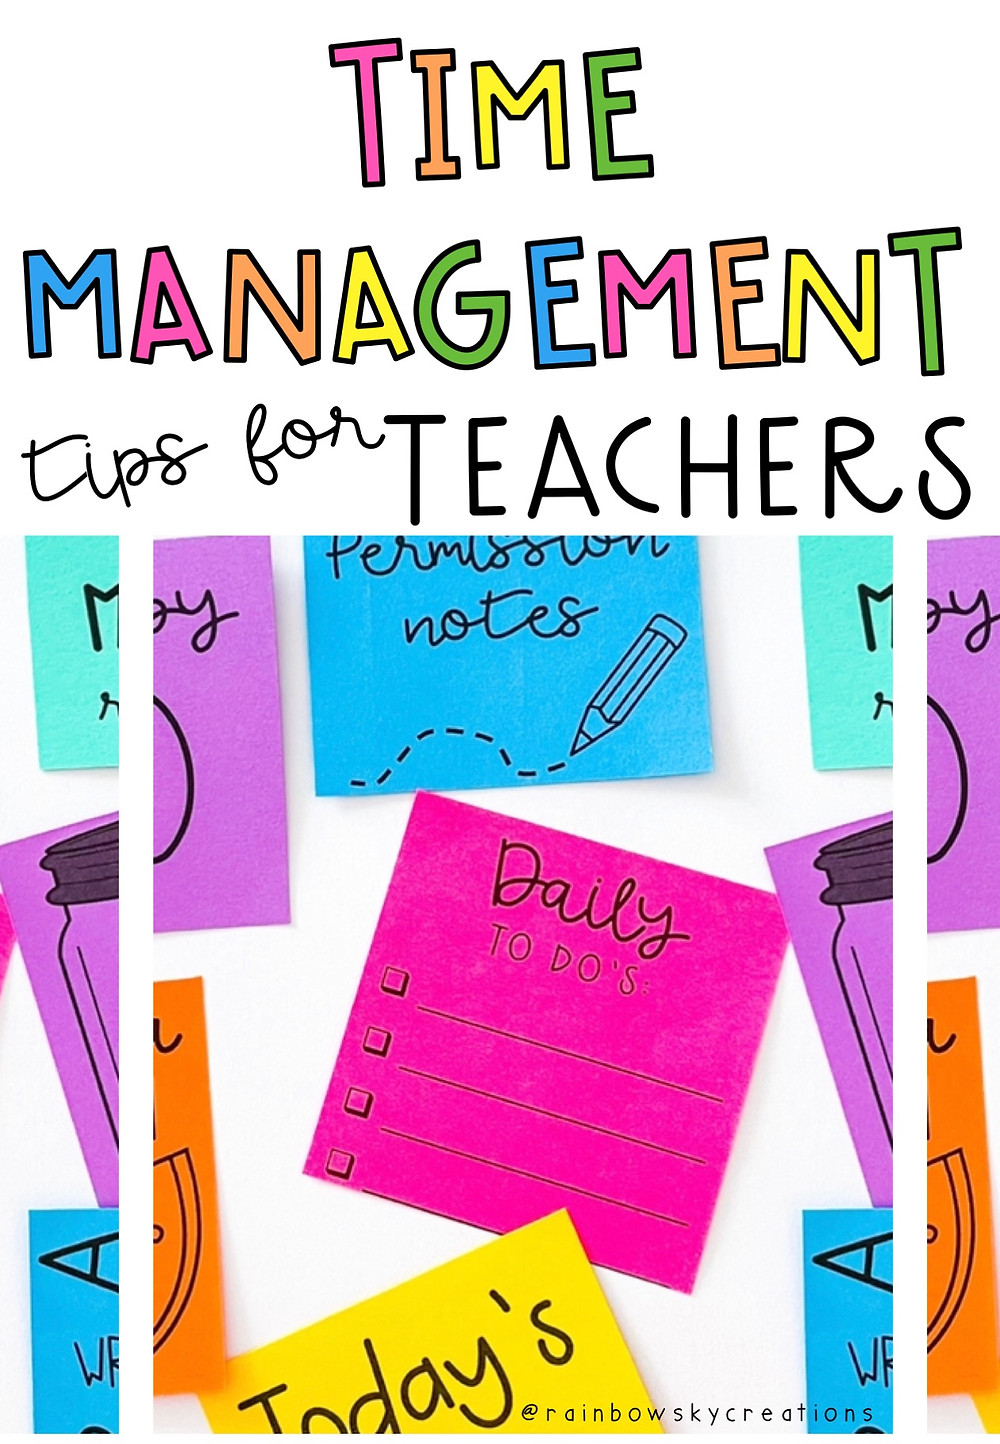 Colourful words saying Time Management Tips for Teachers with colourful sticky note imagee